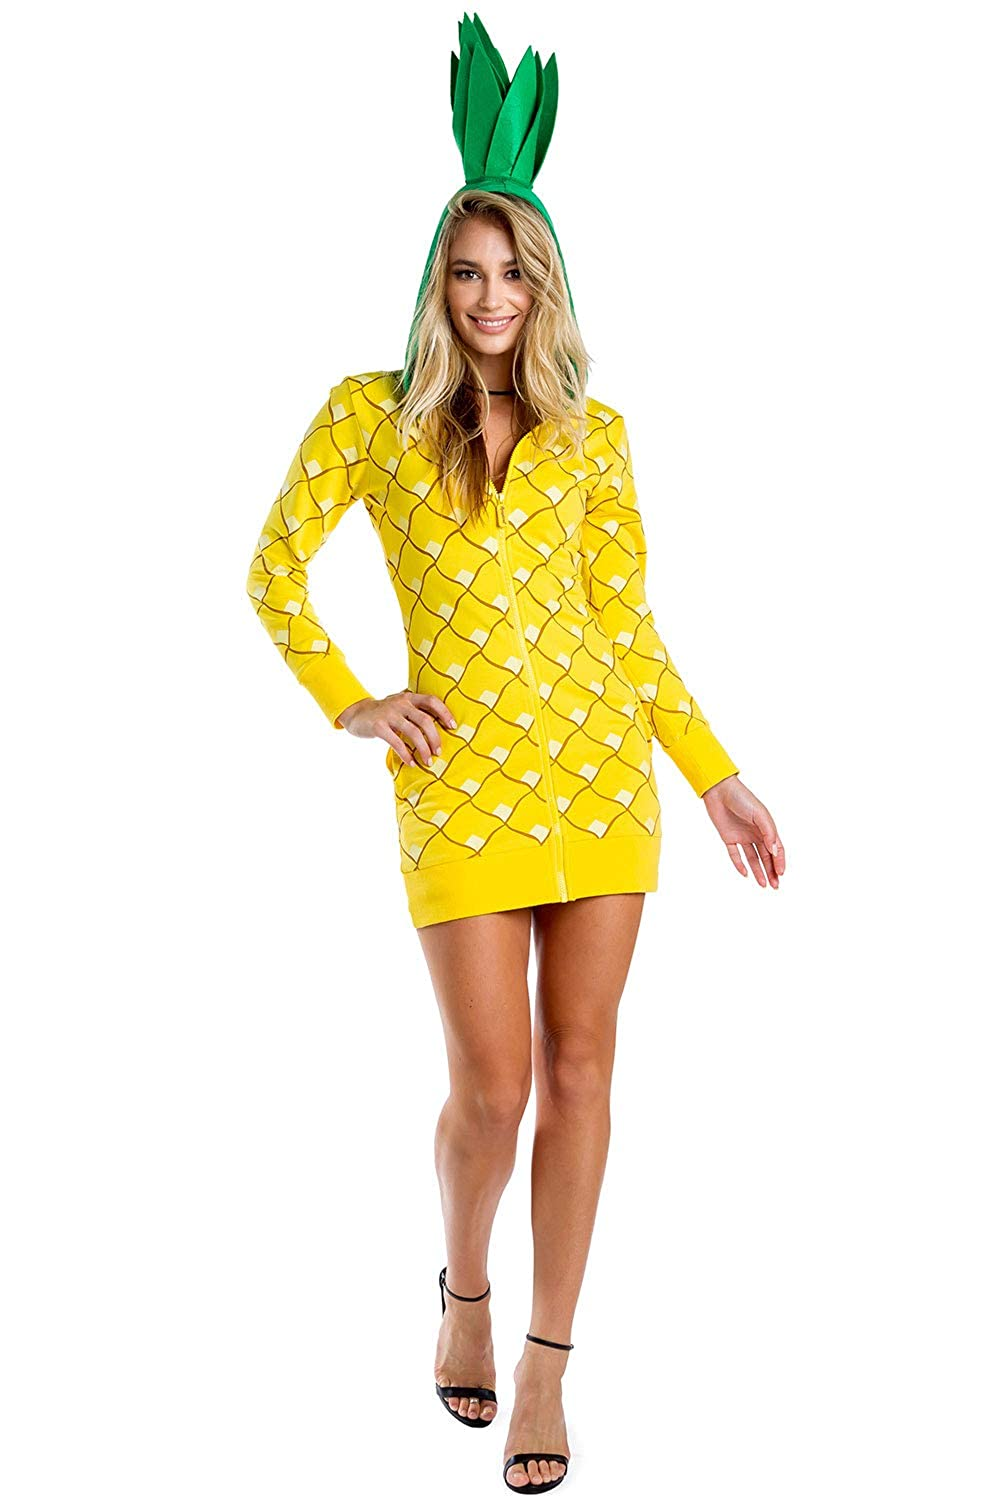 Tipsy Elves Womens Pineapple Costume Dress w Pockets for Halloween - Pineapple Onesie for Women